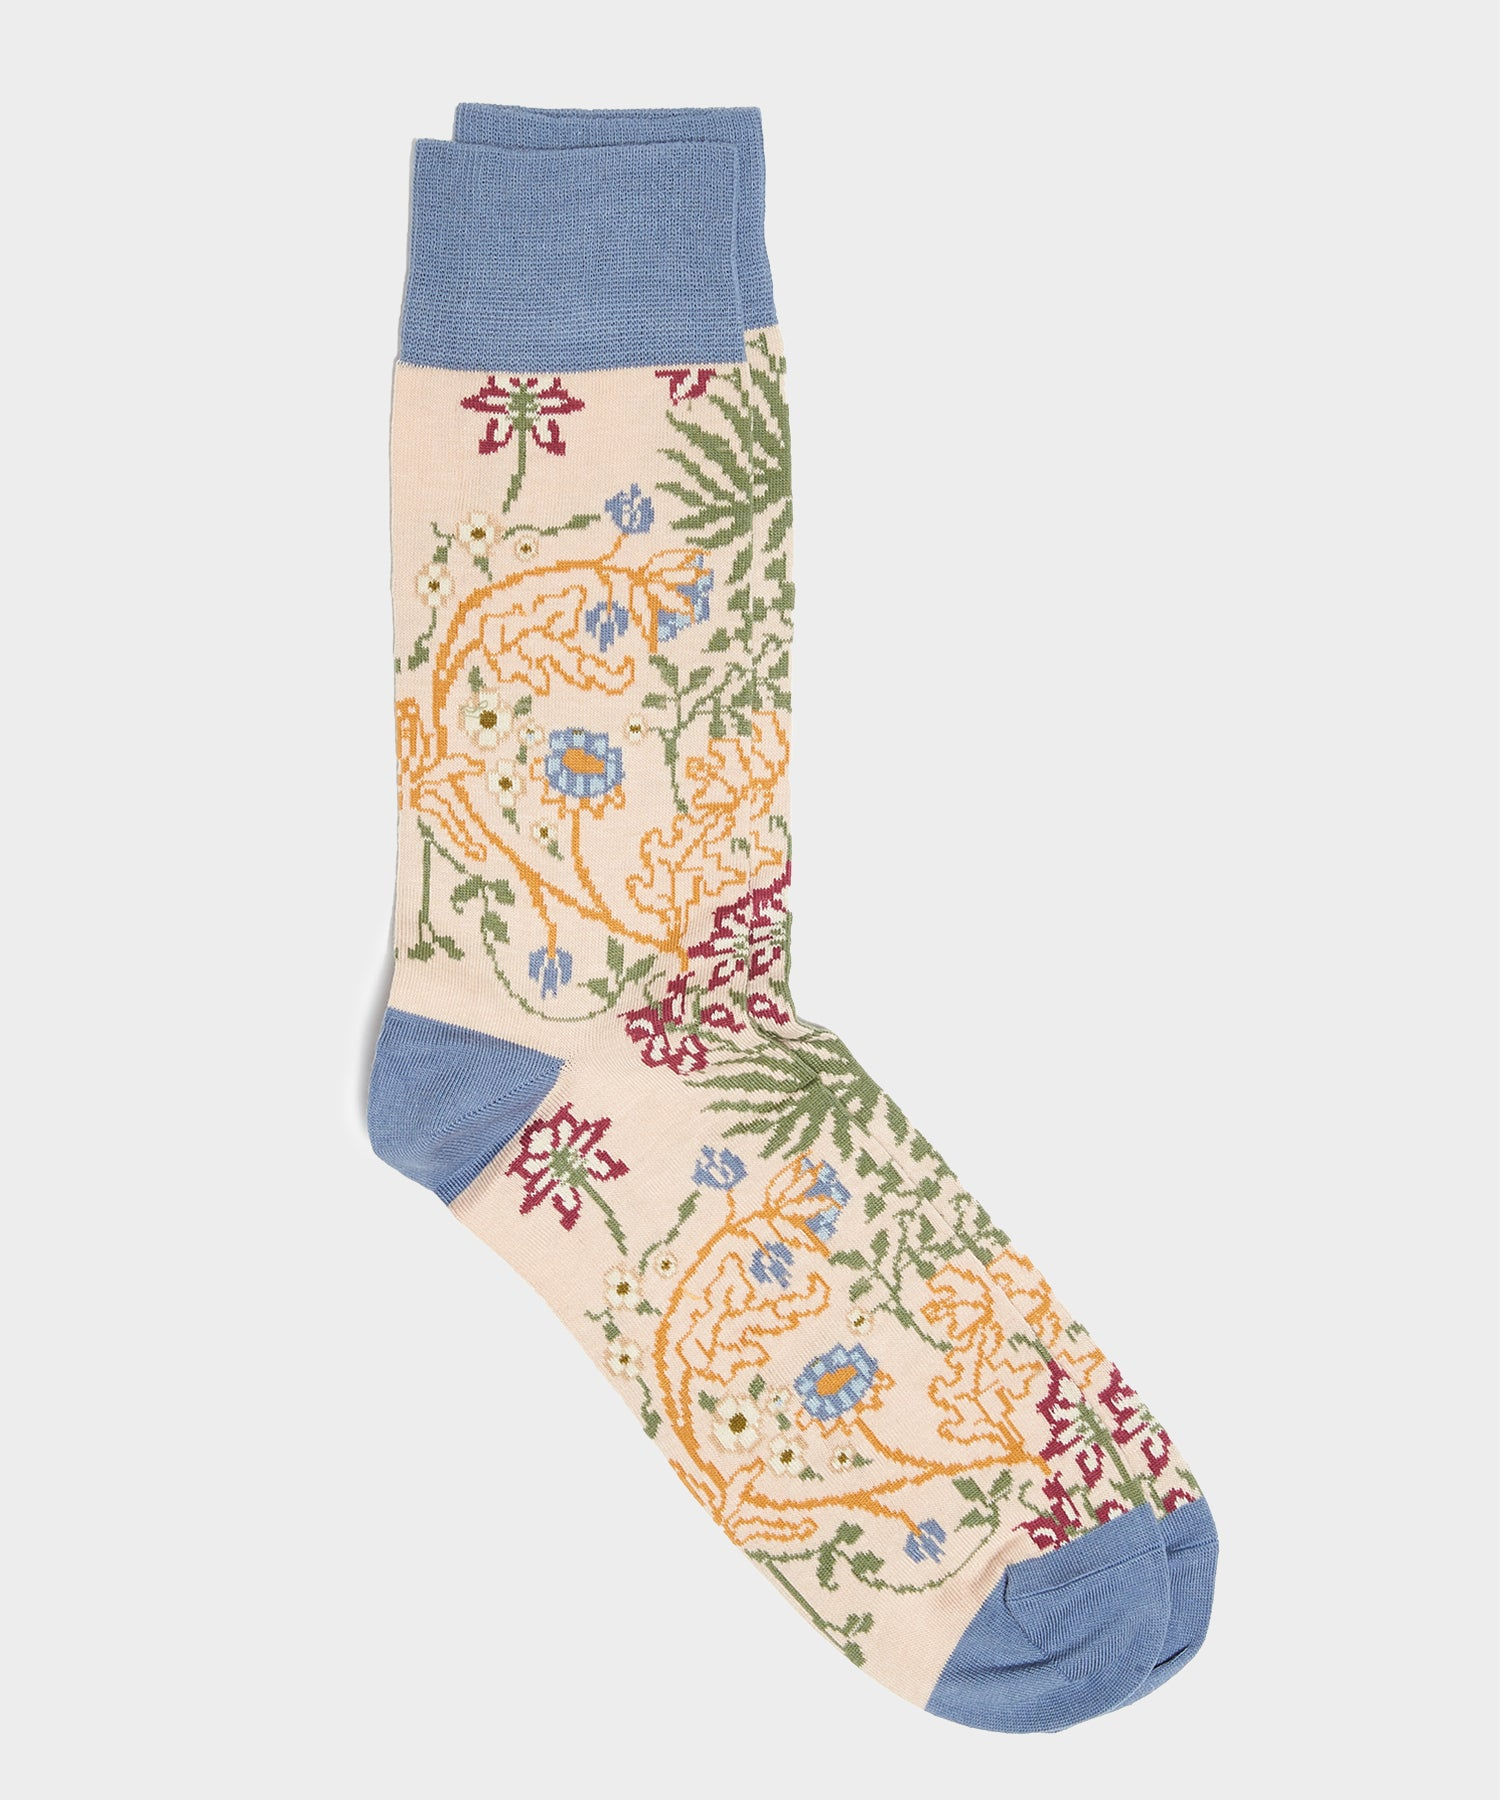 Corgi Floral Socks in Cream